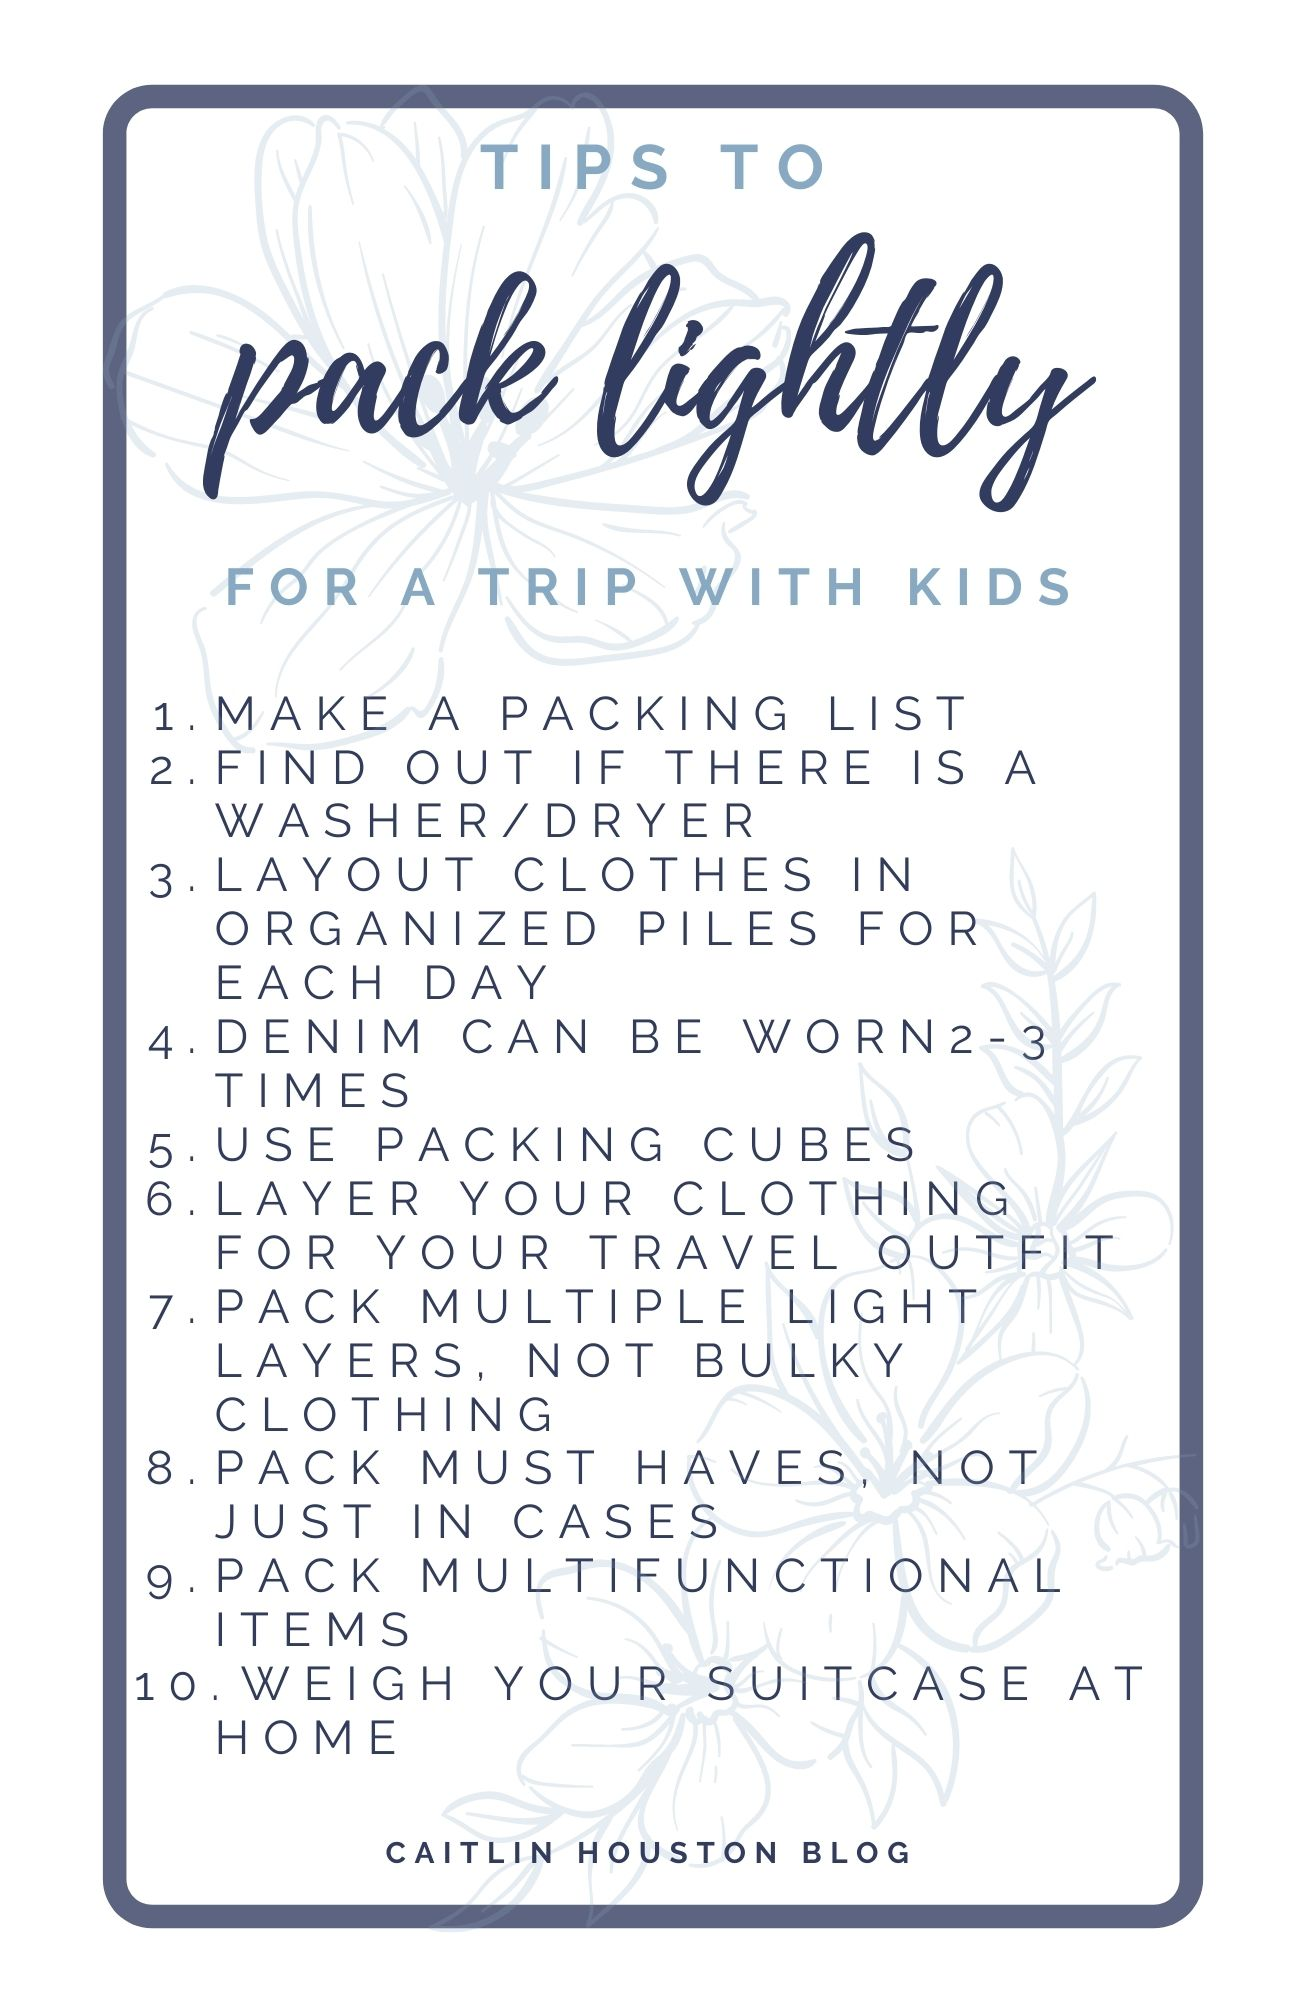 Tips to Pack Lighting for a Trip with Kids